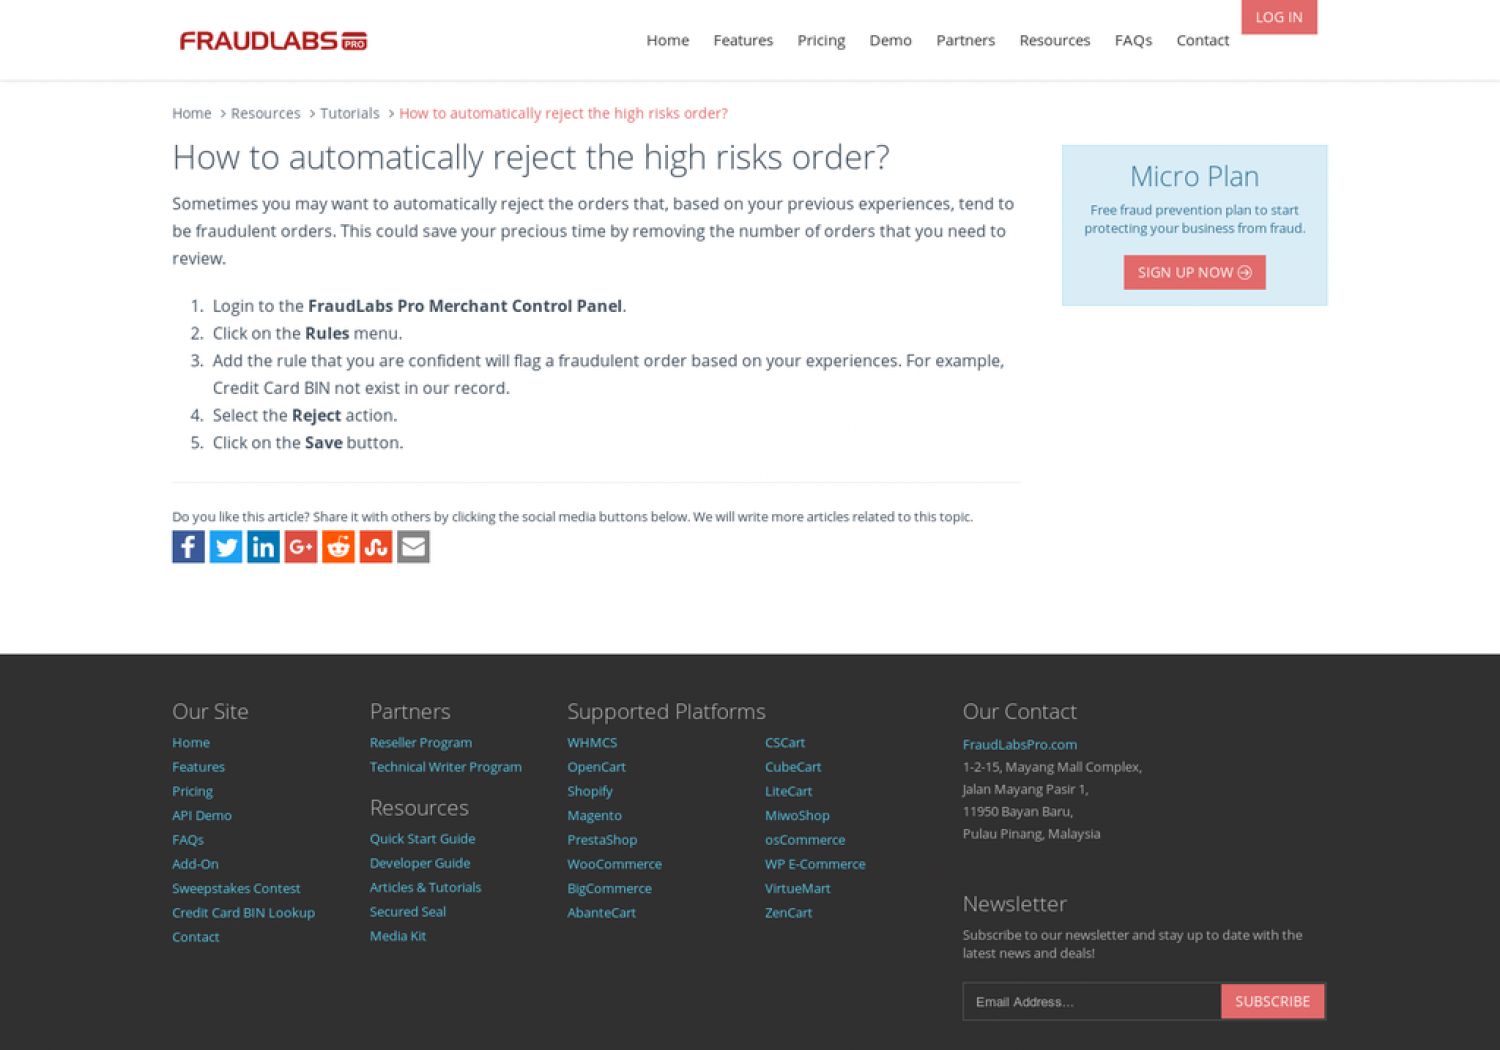 Fraud Labs Pro: How to Automatically Reject the High Risks Order? Infographic